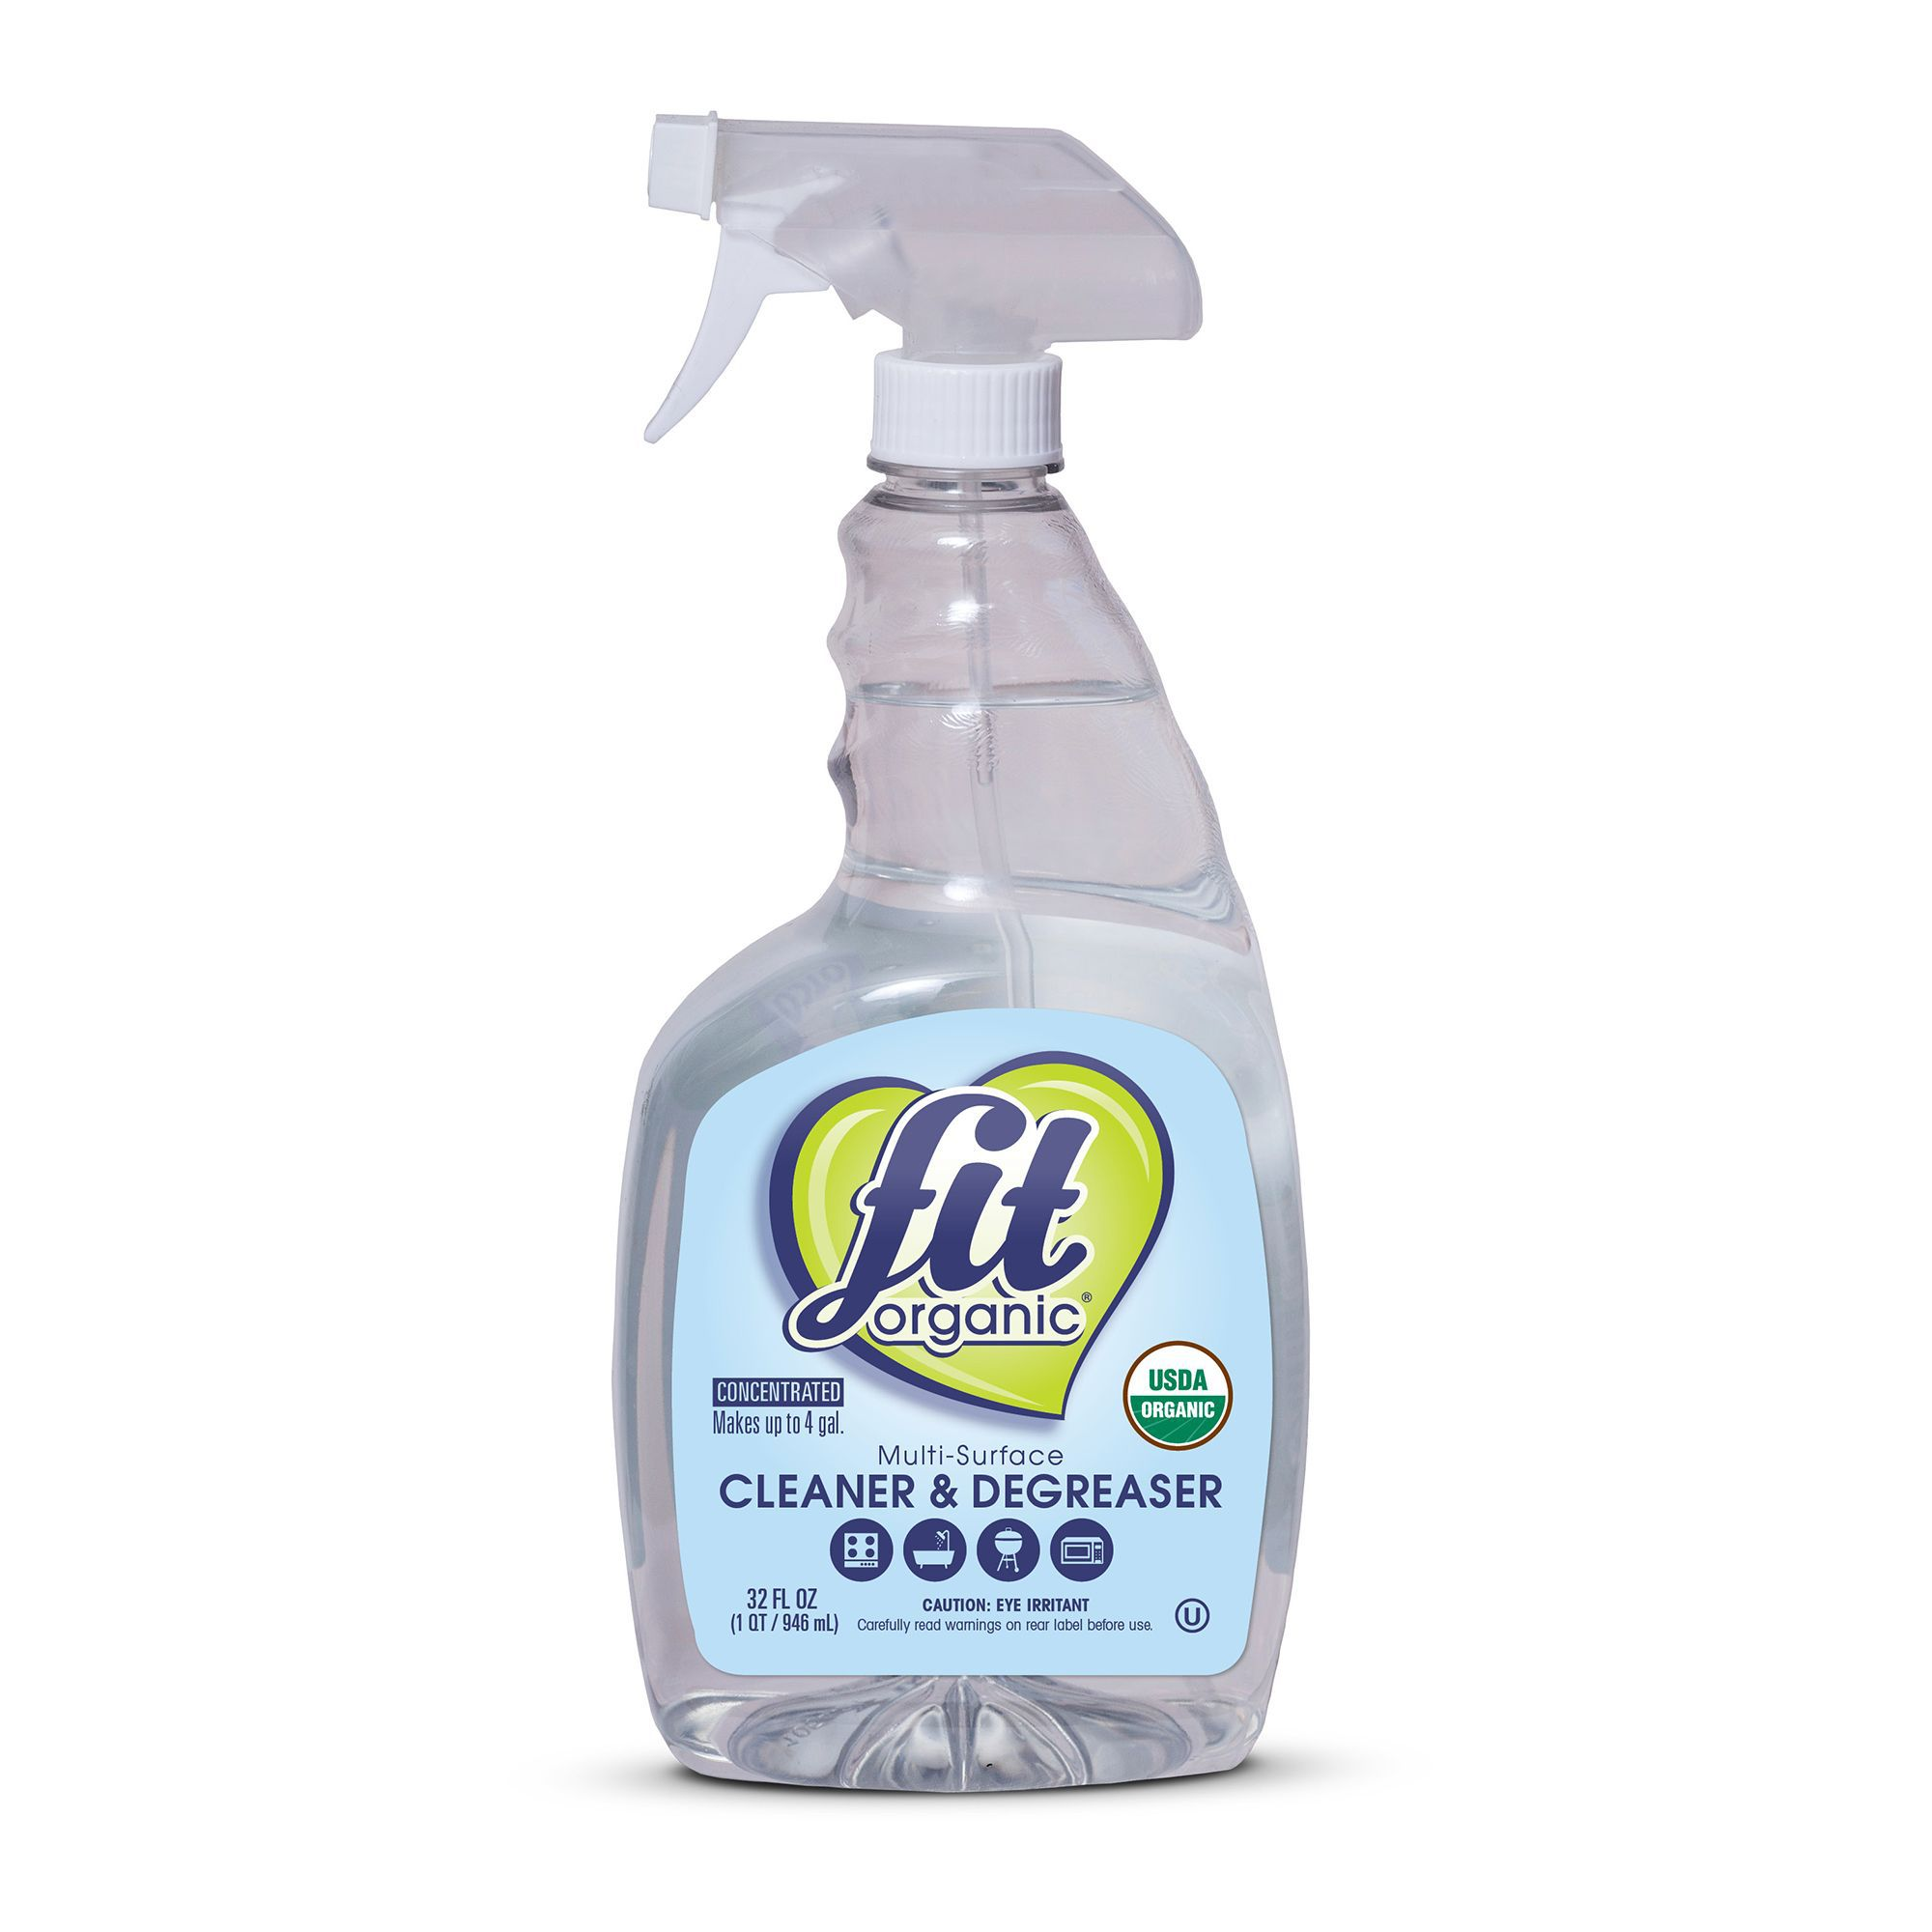 Fit Organic Cleaner and Degreaser